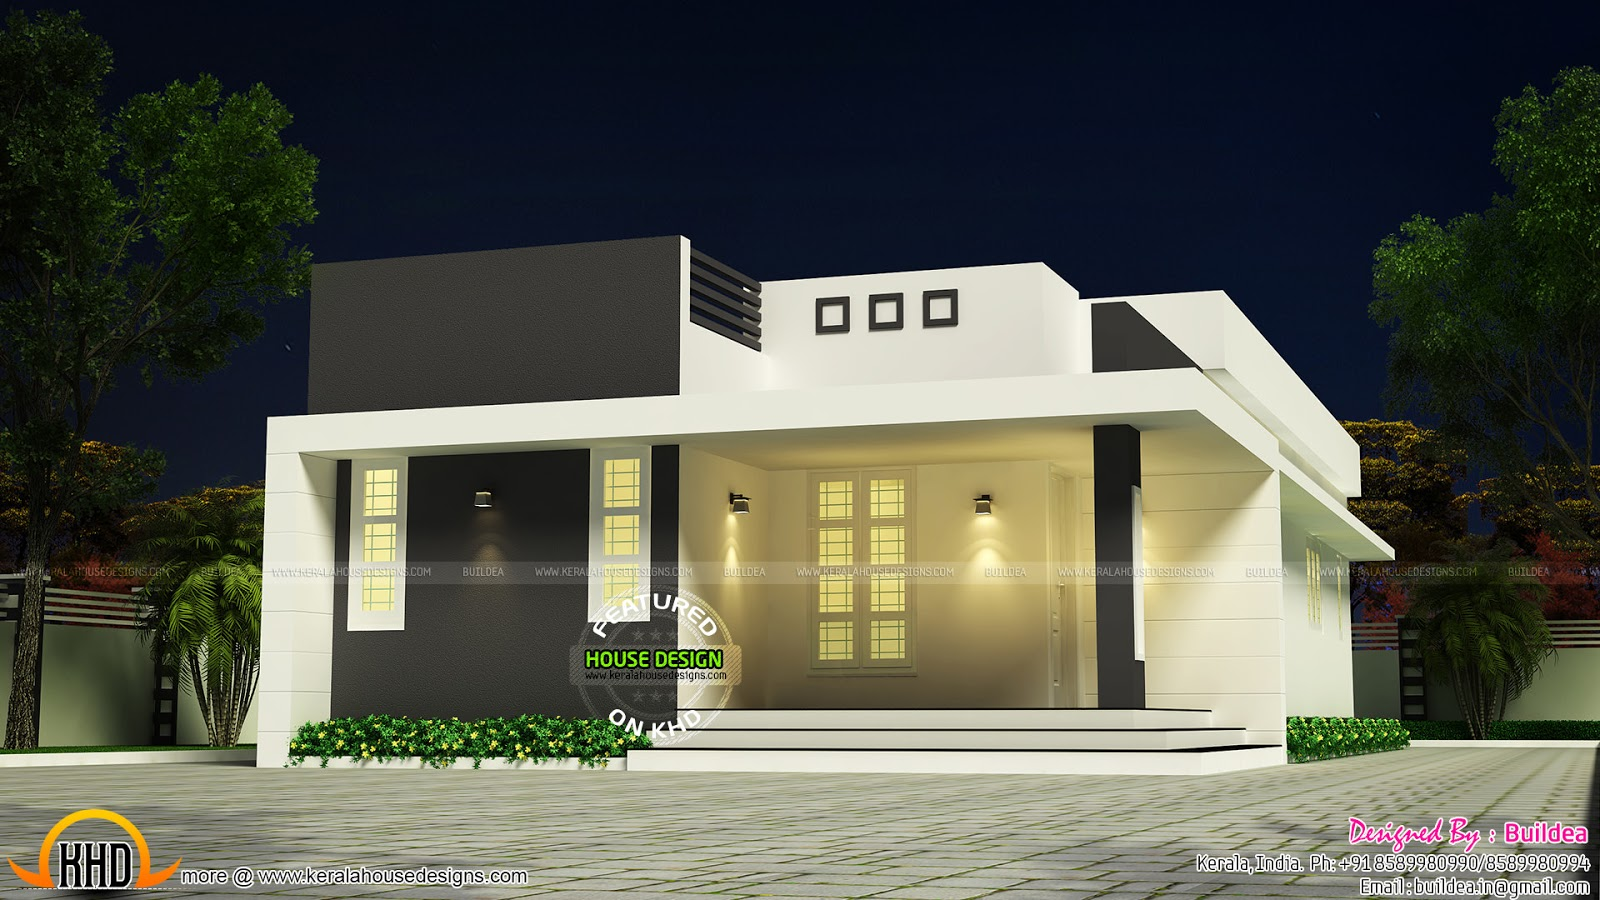 Simple and beautiful low budget house kerala home design and floor plans Low budget home design ideas